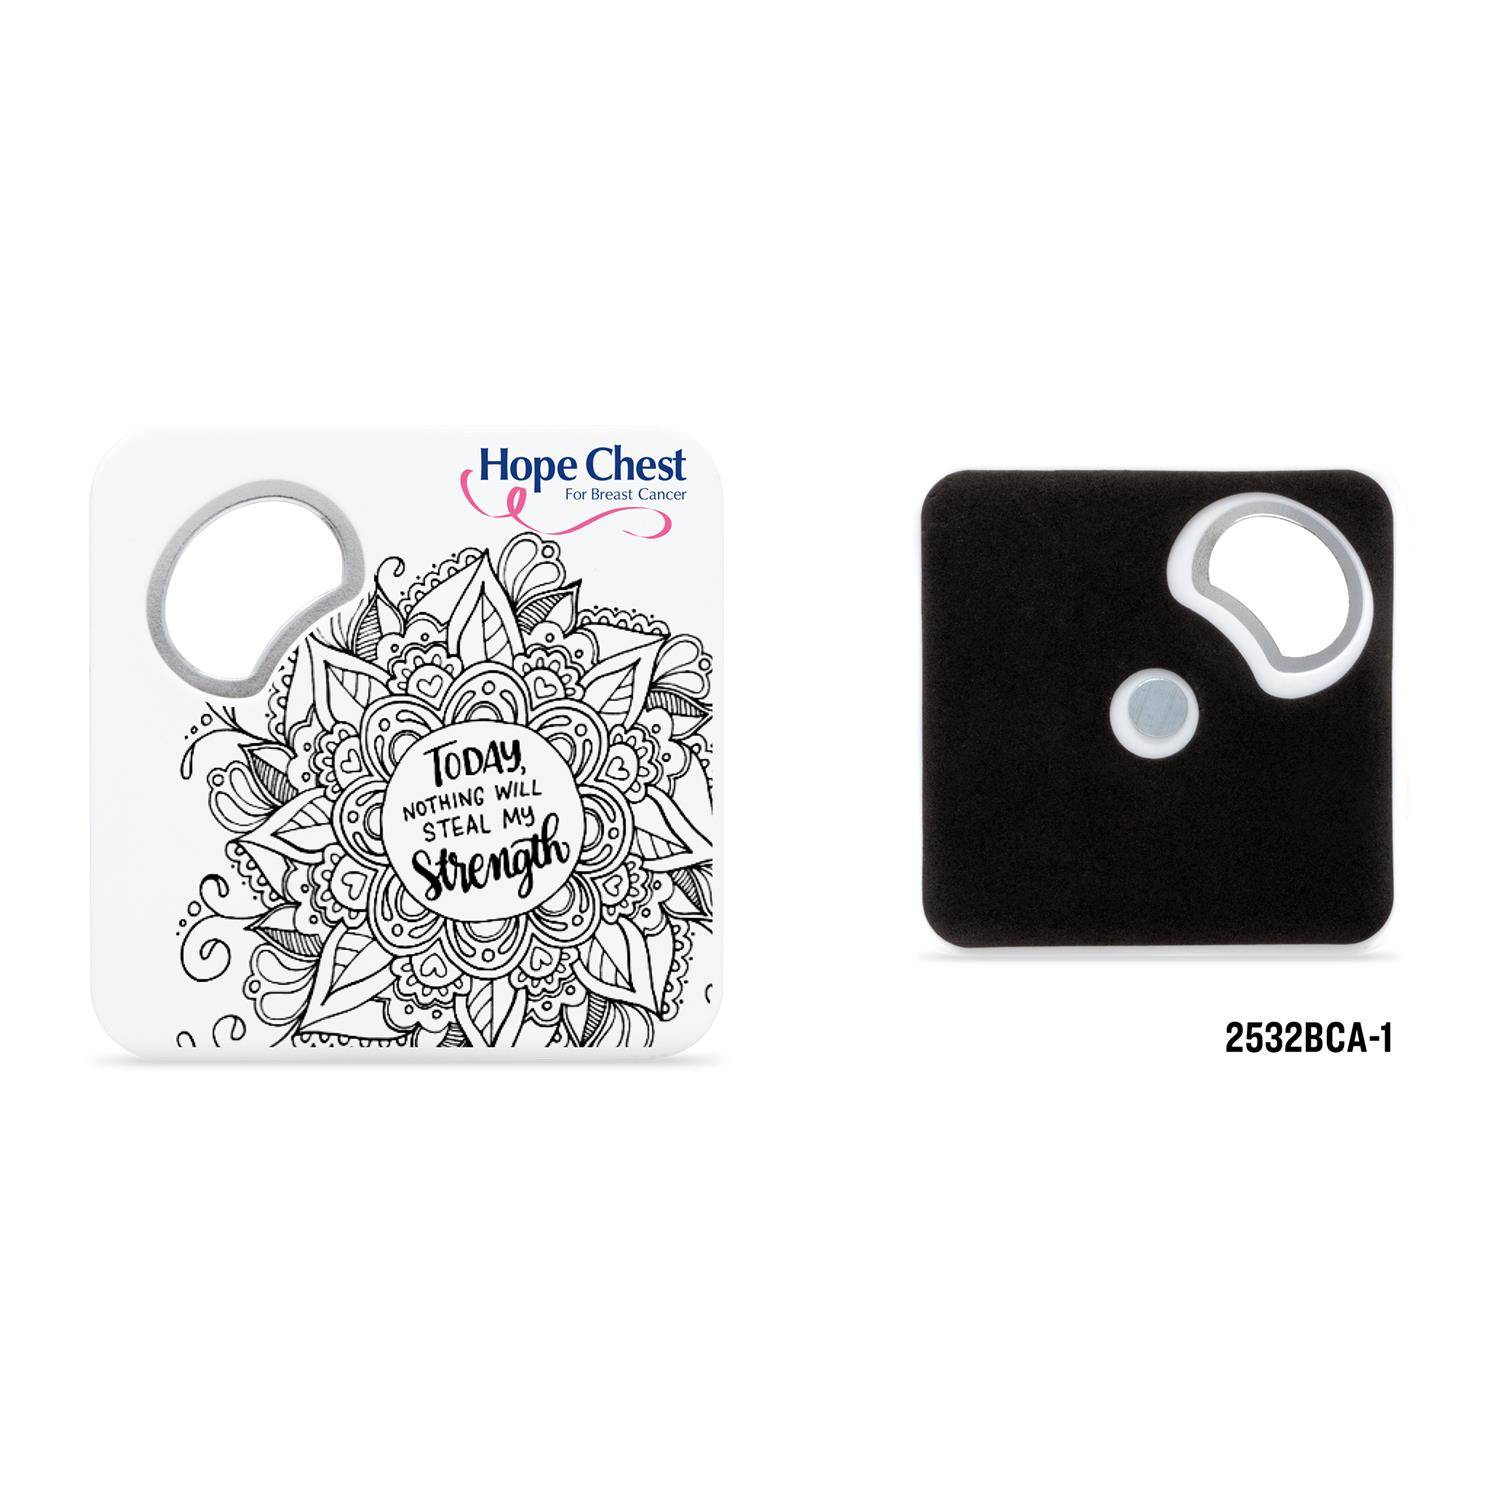 2532BCA - Color Me Magnetic Coaster With Bottle Opener